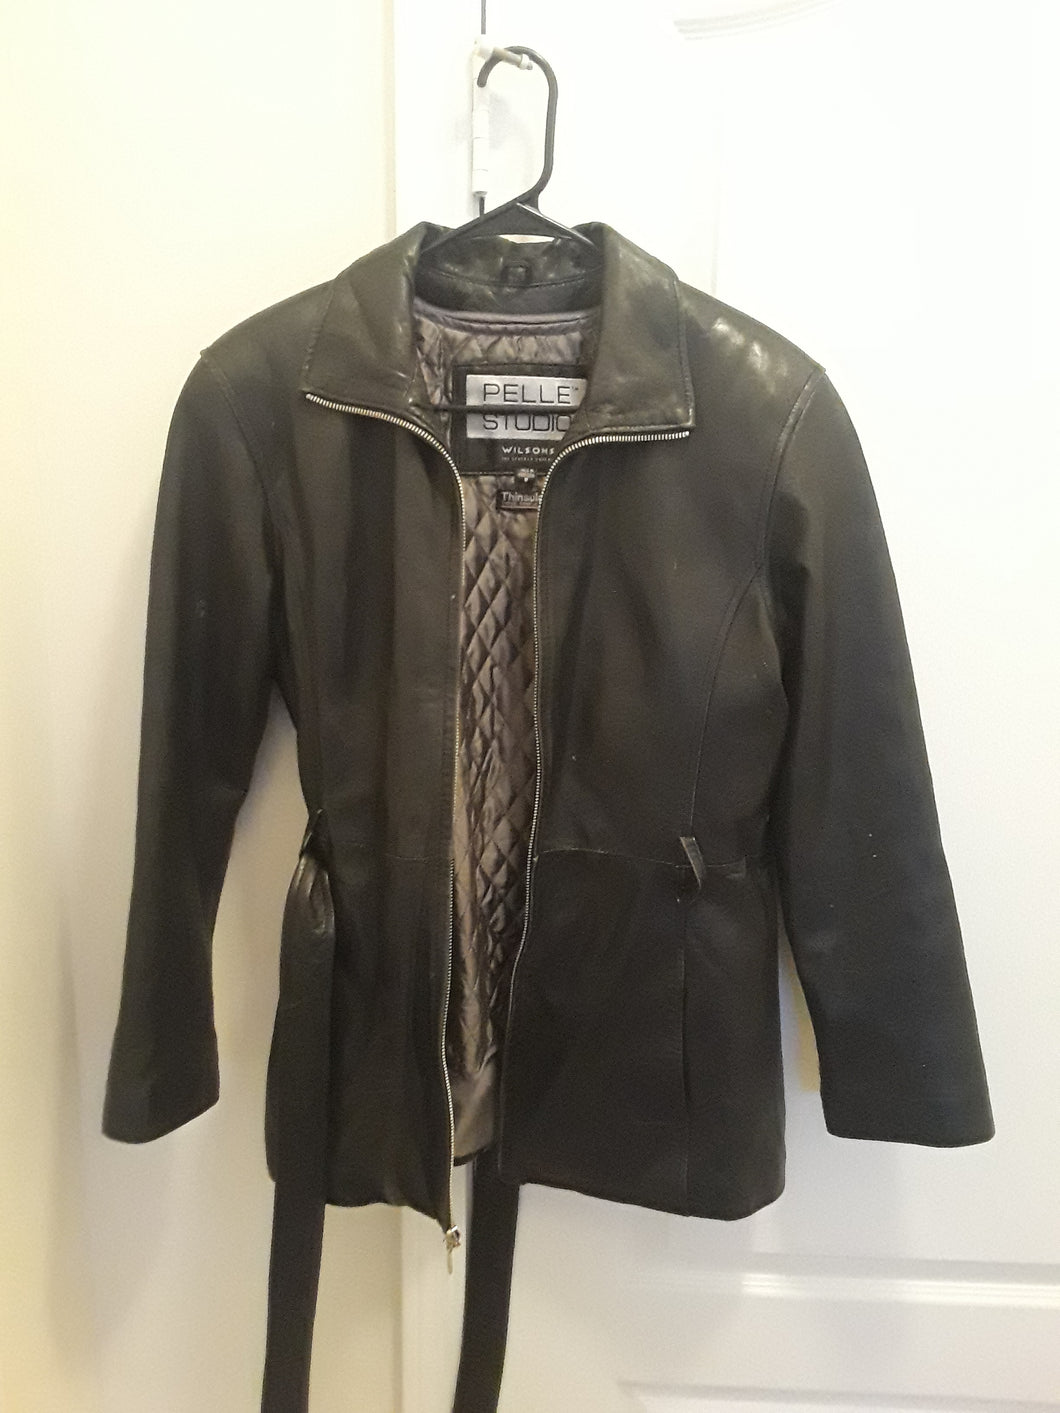 Wilson's Pelle Studio Leather Jacket